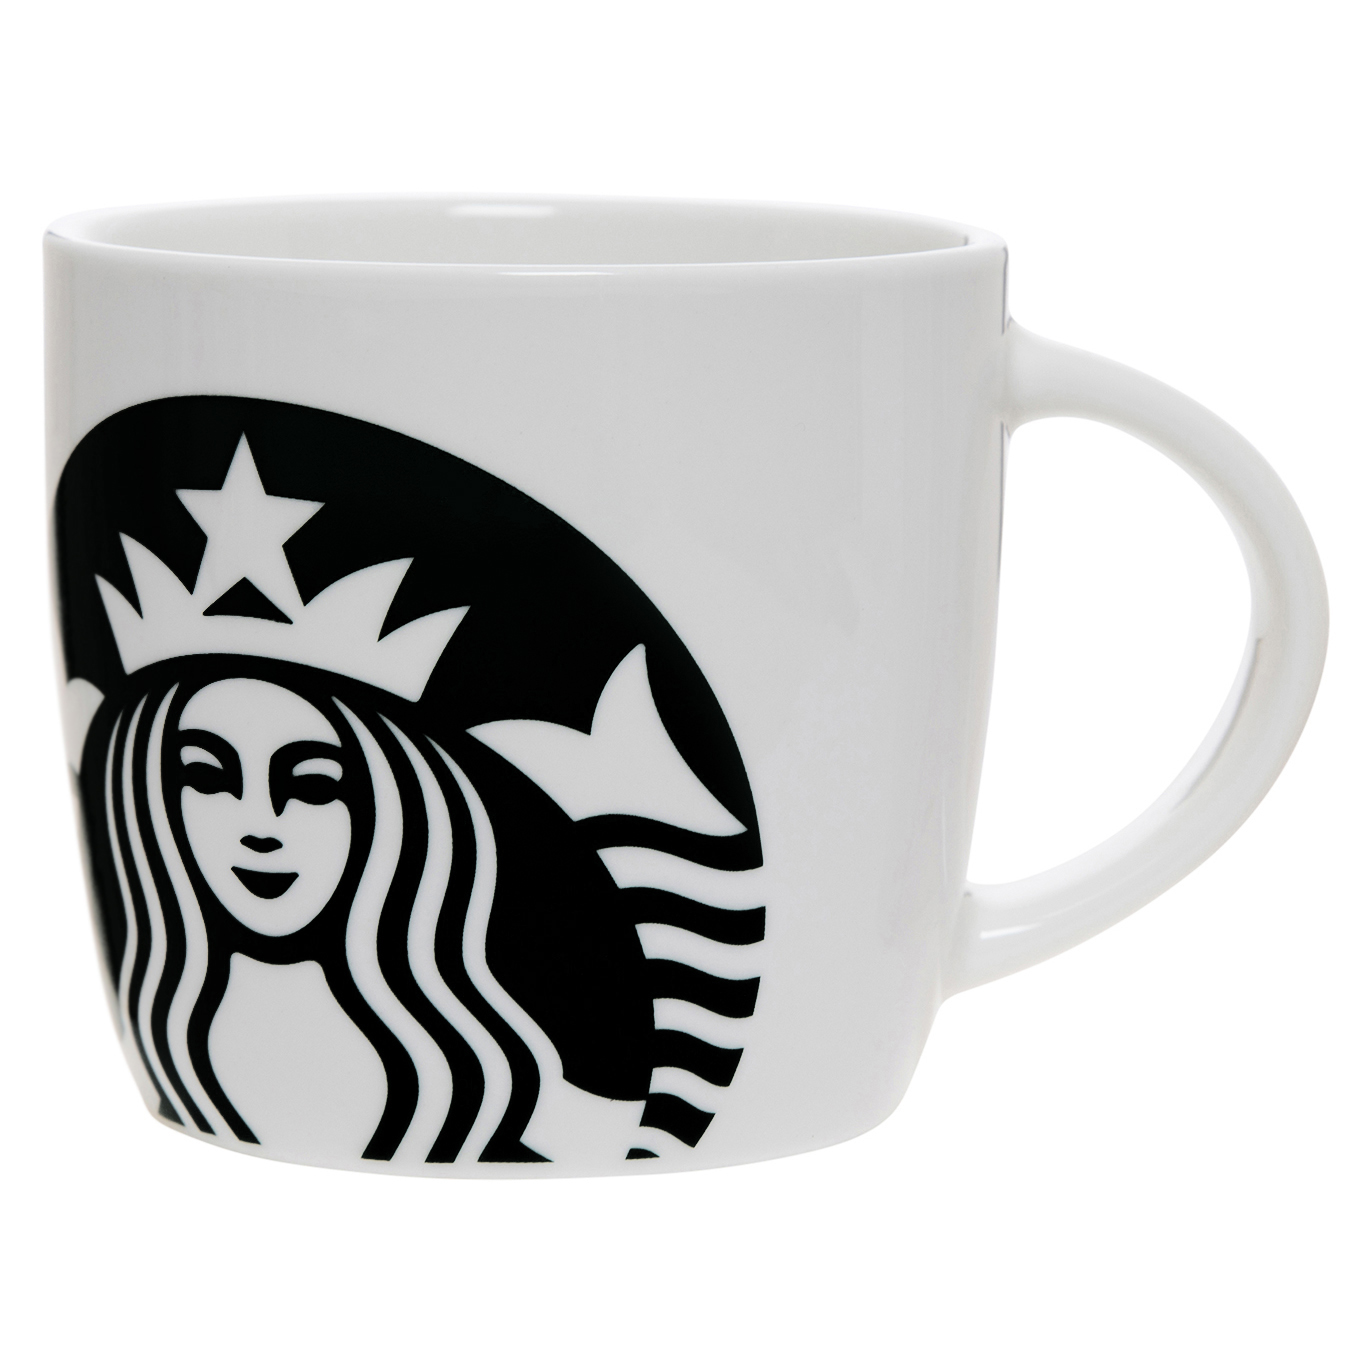 Starbucks 14oz Ceramic Mug White Swirl